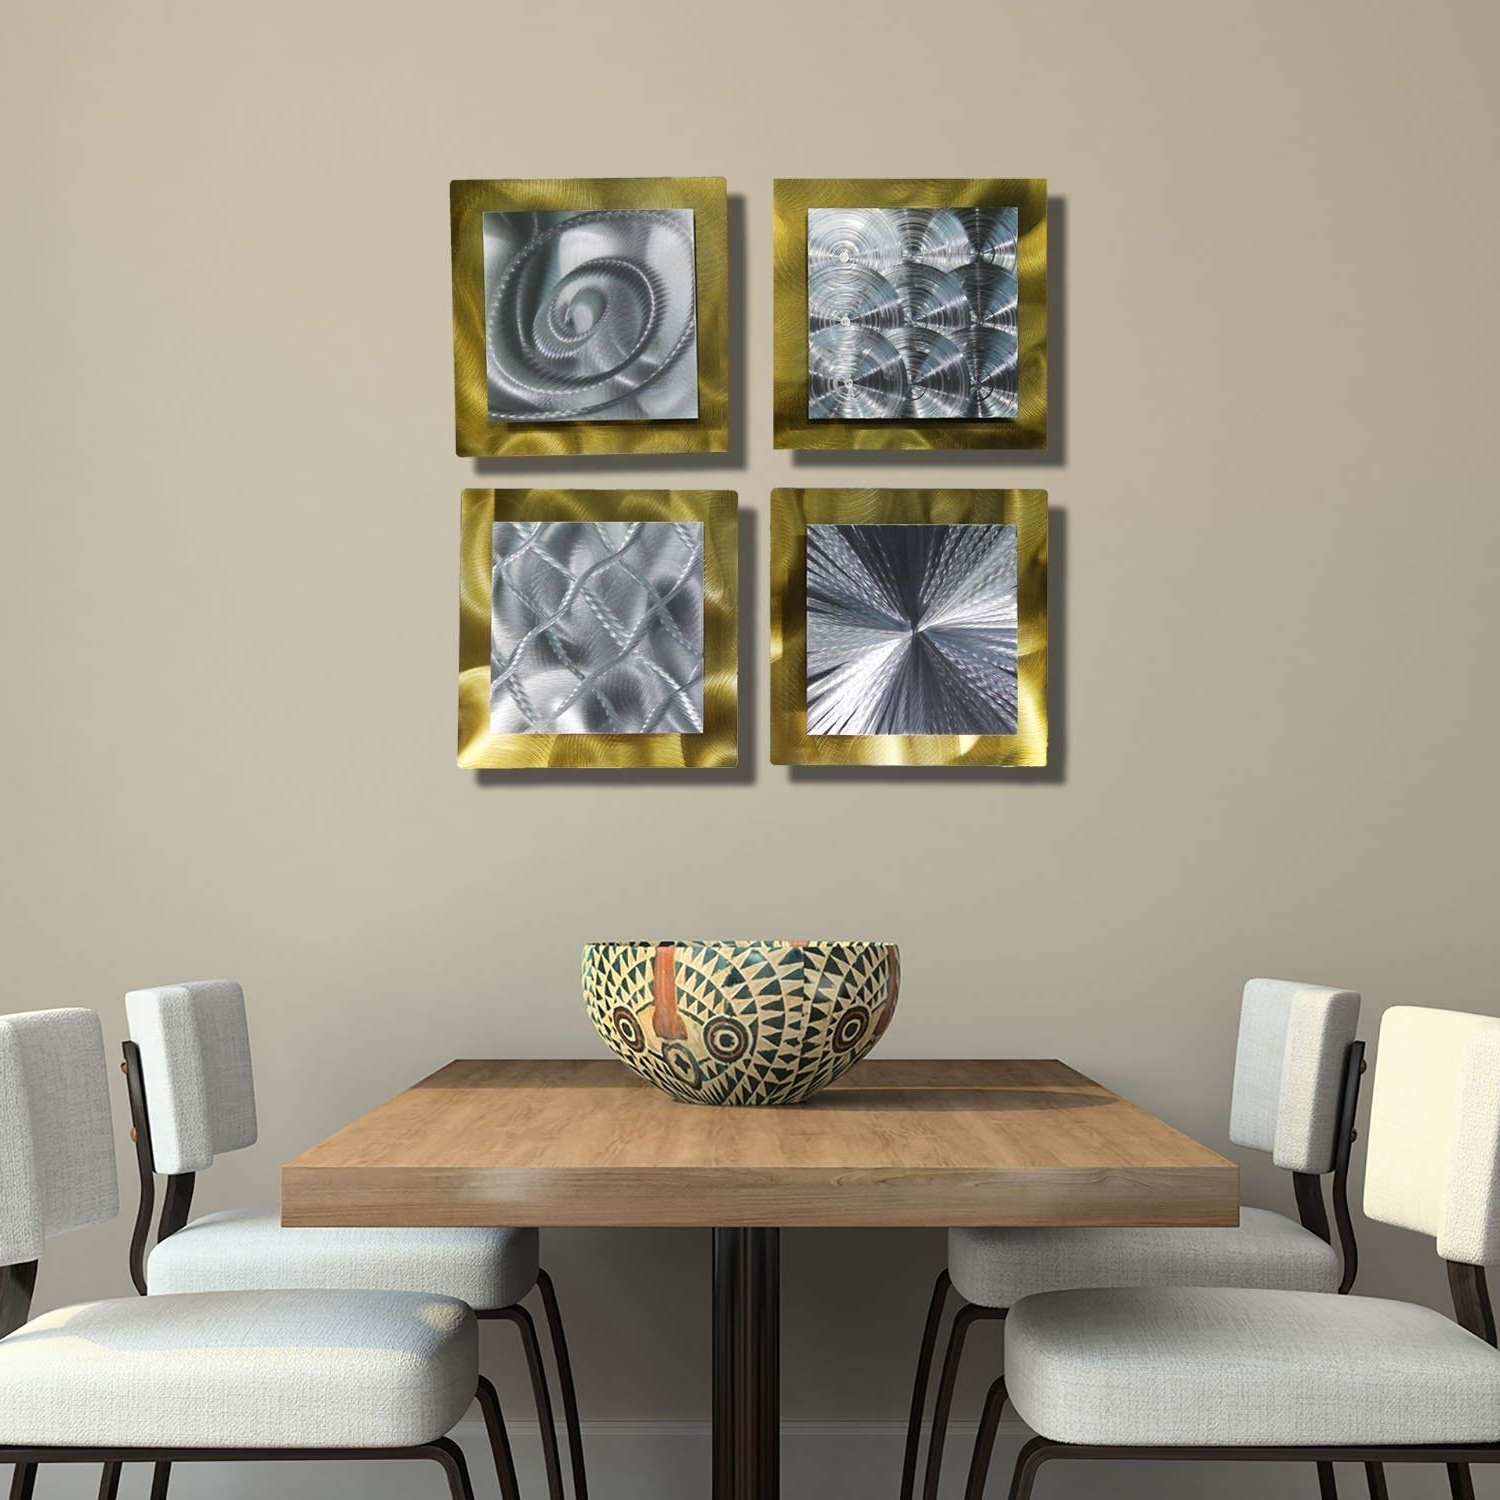 Amazon: Statements2000 Gold & Silver Contemporary Metal Wall Art Within Most Current Contemporary Metal Wall Art (Gallery 9 of 15)